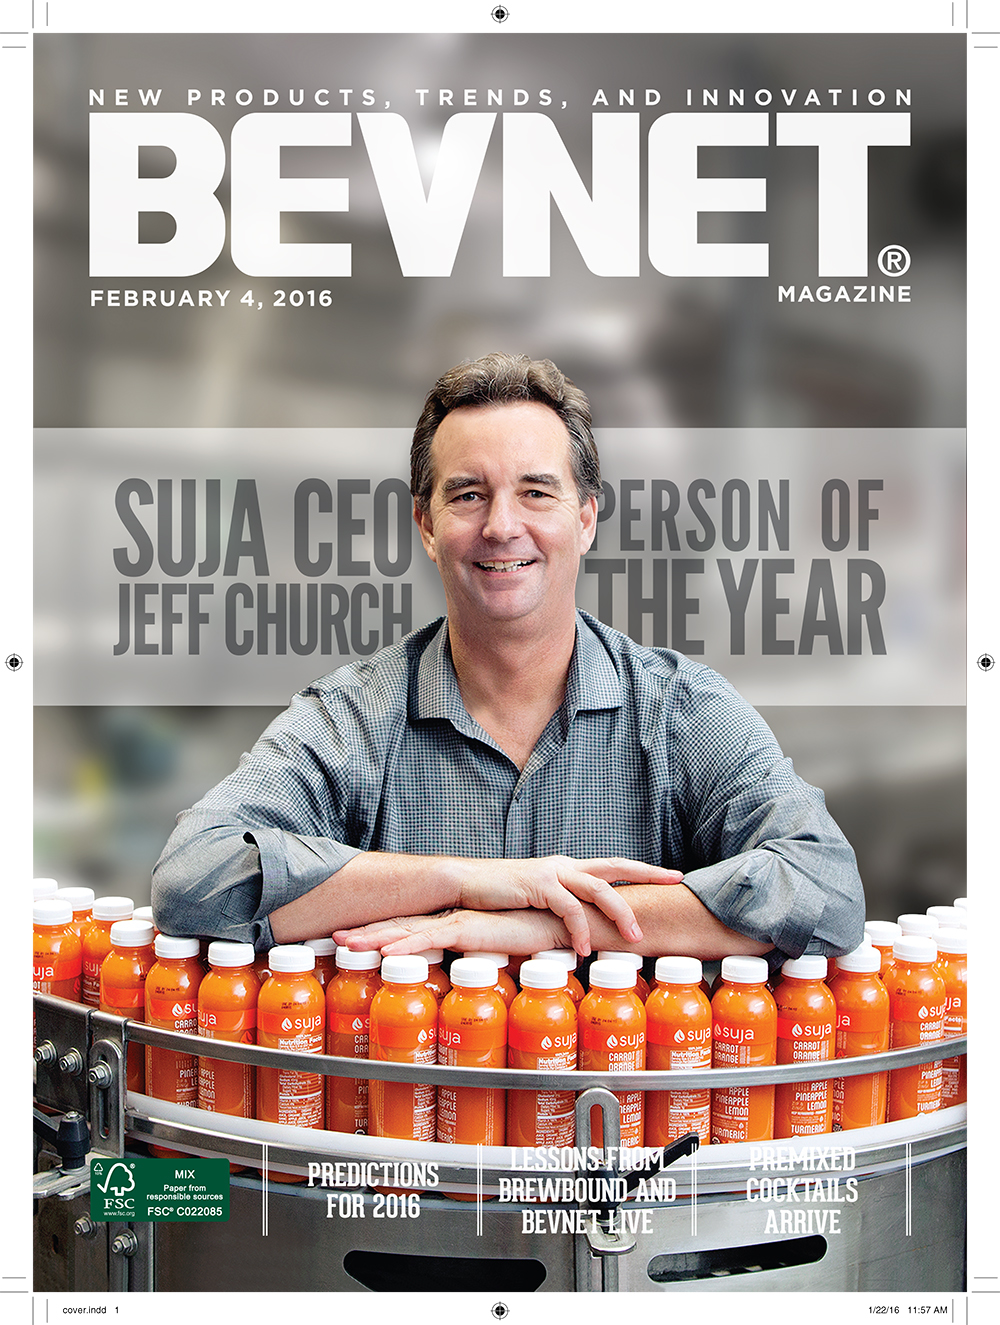 Suja CEO Jeff Church, BevNET's Person of the Year for 2015